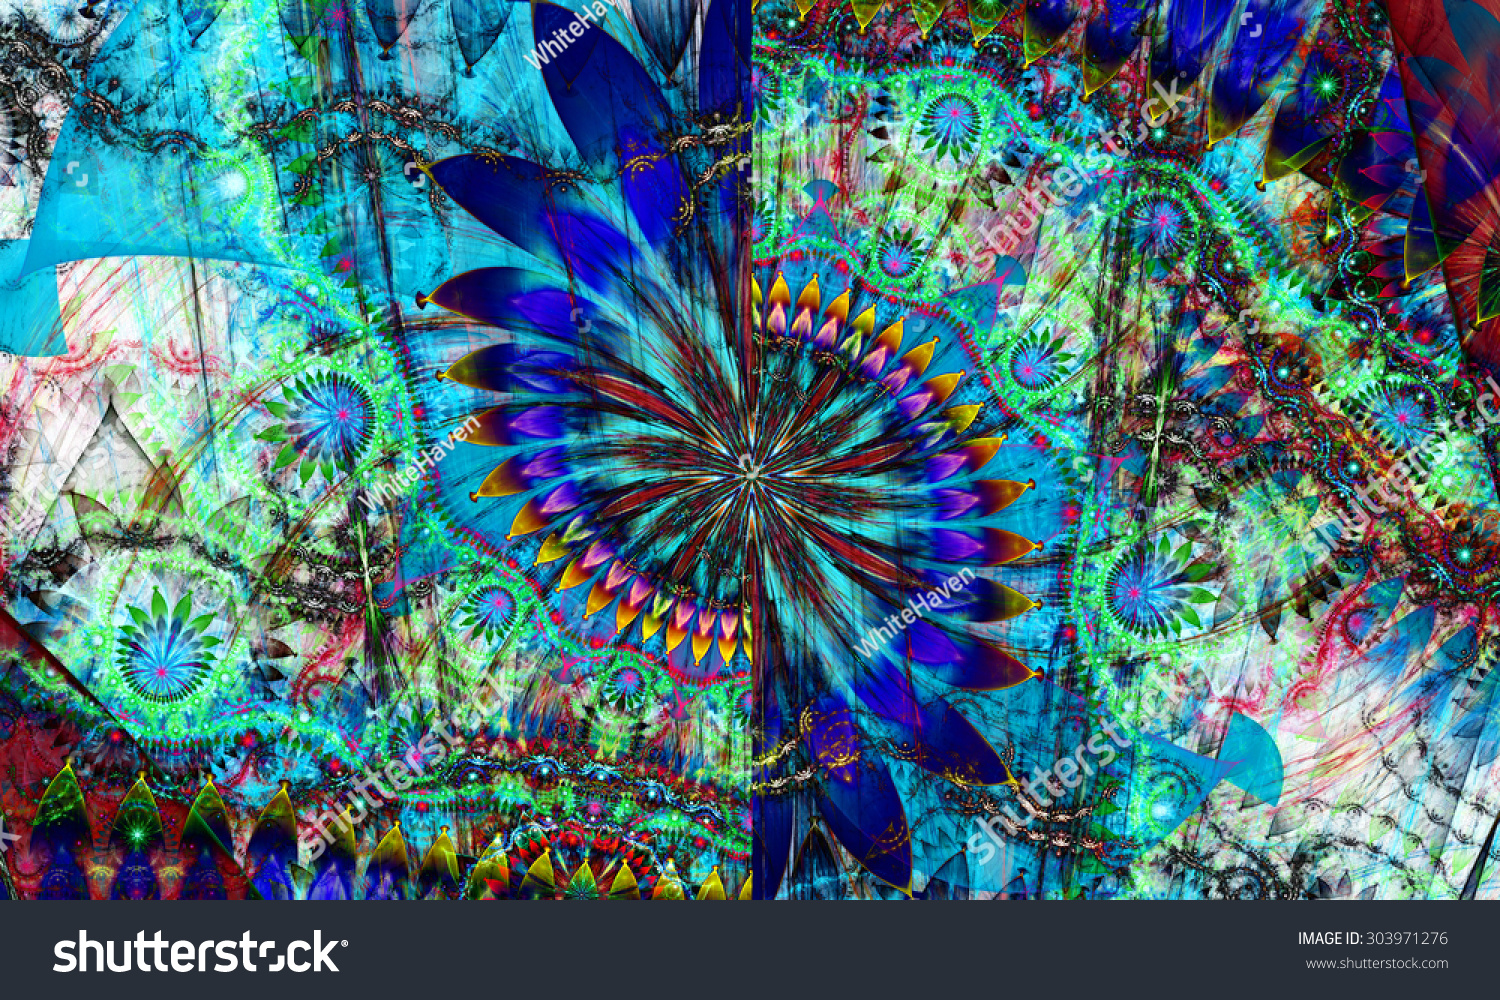 Beautiful Wallpaper High Resolution Trippy - stock-photo-high-resolution-wallpaper-of-a-psychedelic-abstract-alien-sunflower-deocrated-with-various-flower-303971276  2018_6776.jpg